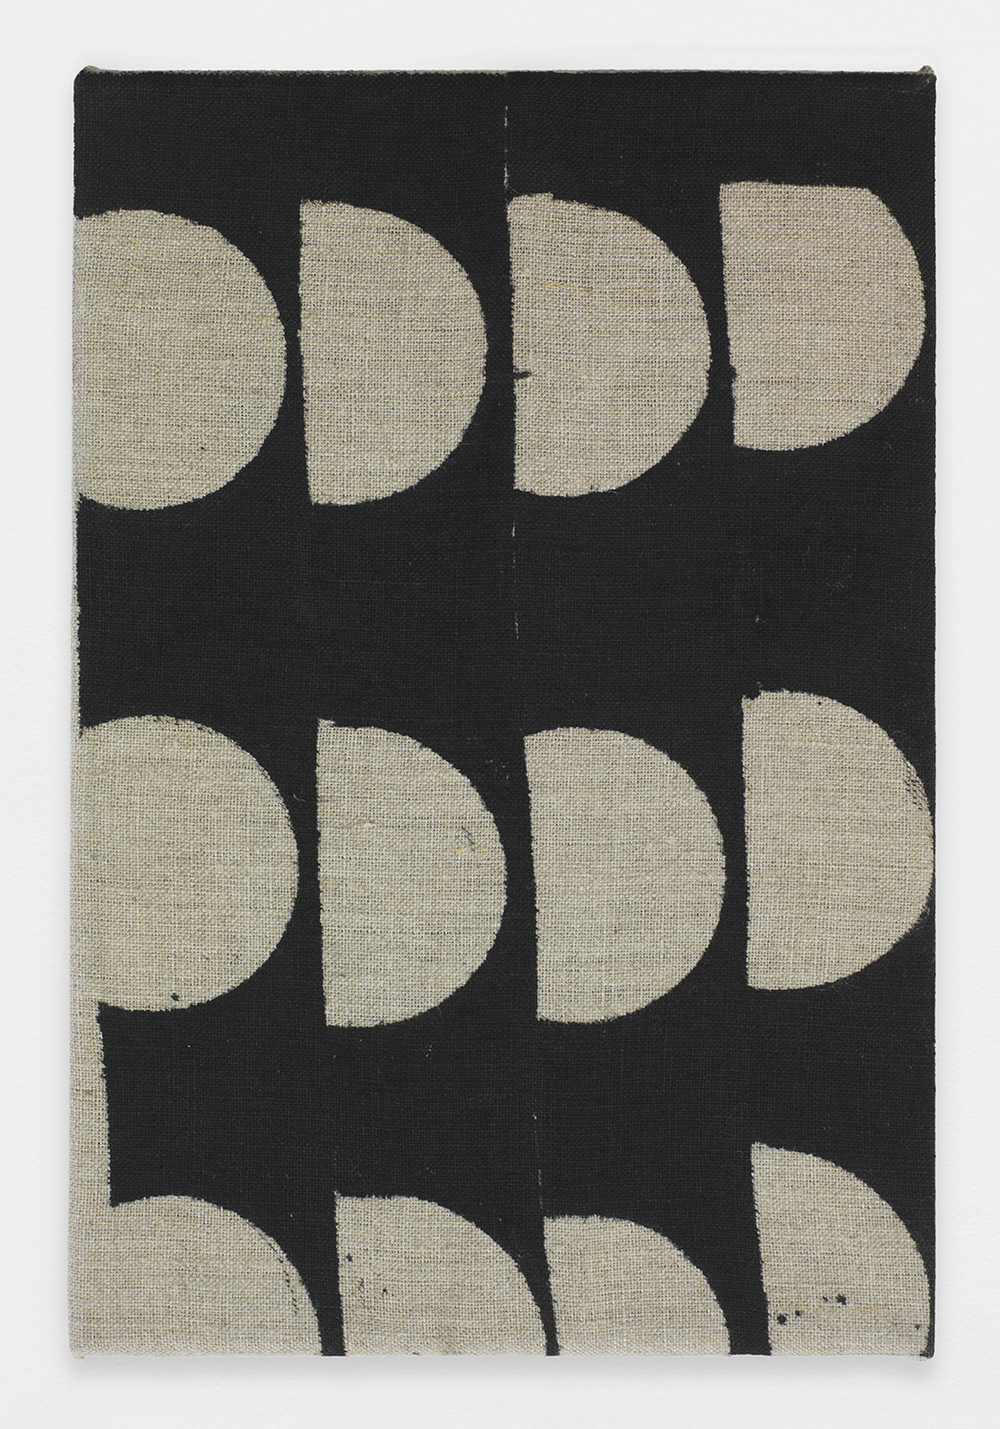 AUGUSTUS THOMPSON  Untitled , 2013 Ink on linen 12 x 8 inches